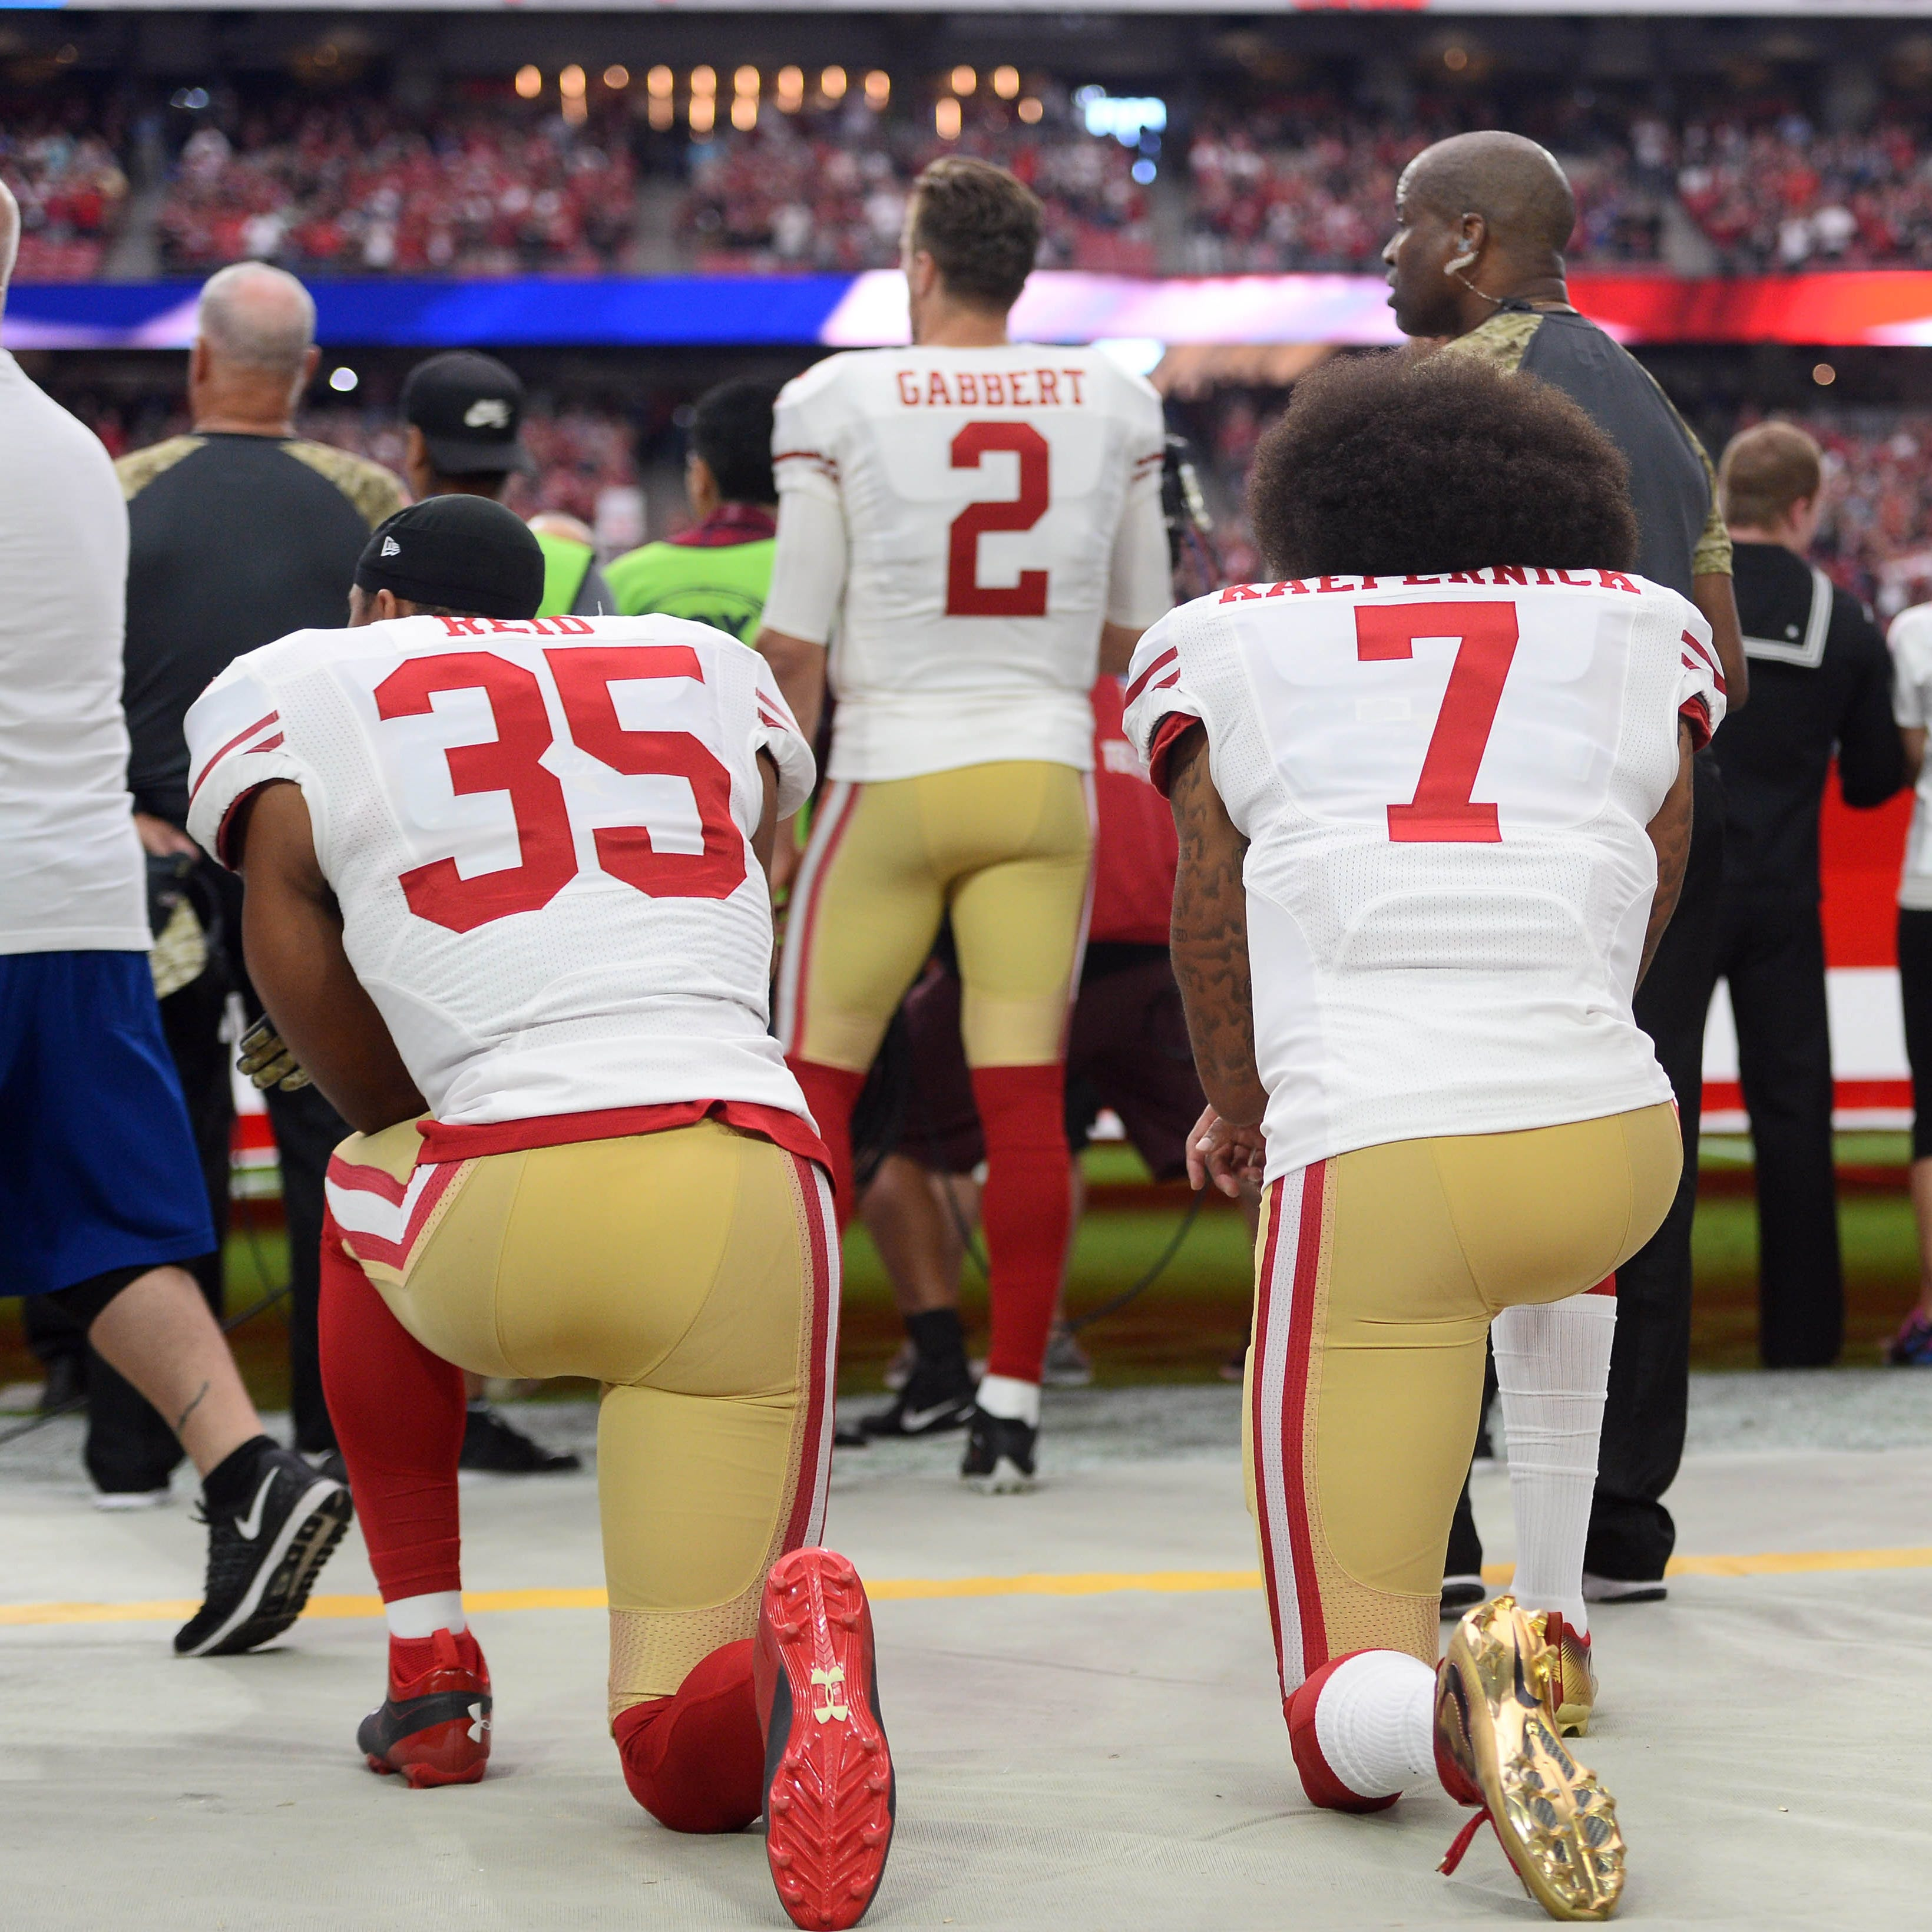 Horn column: NFL players want to enact social change while Trump wants to play games